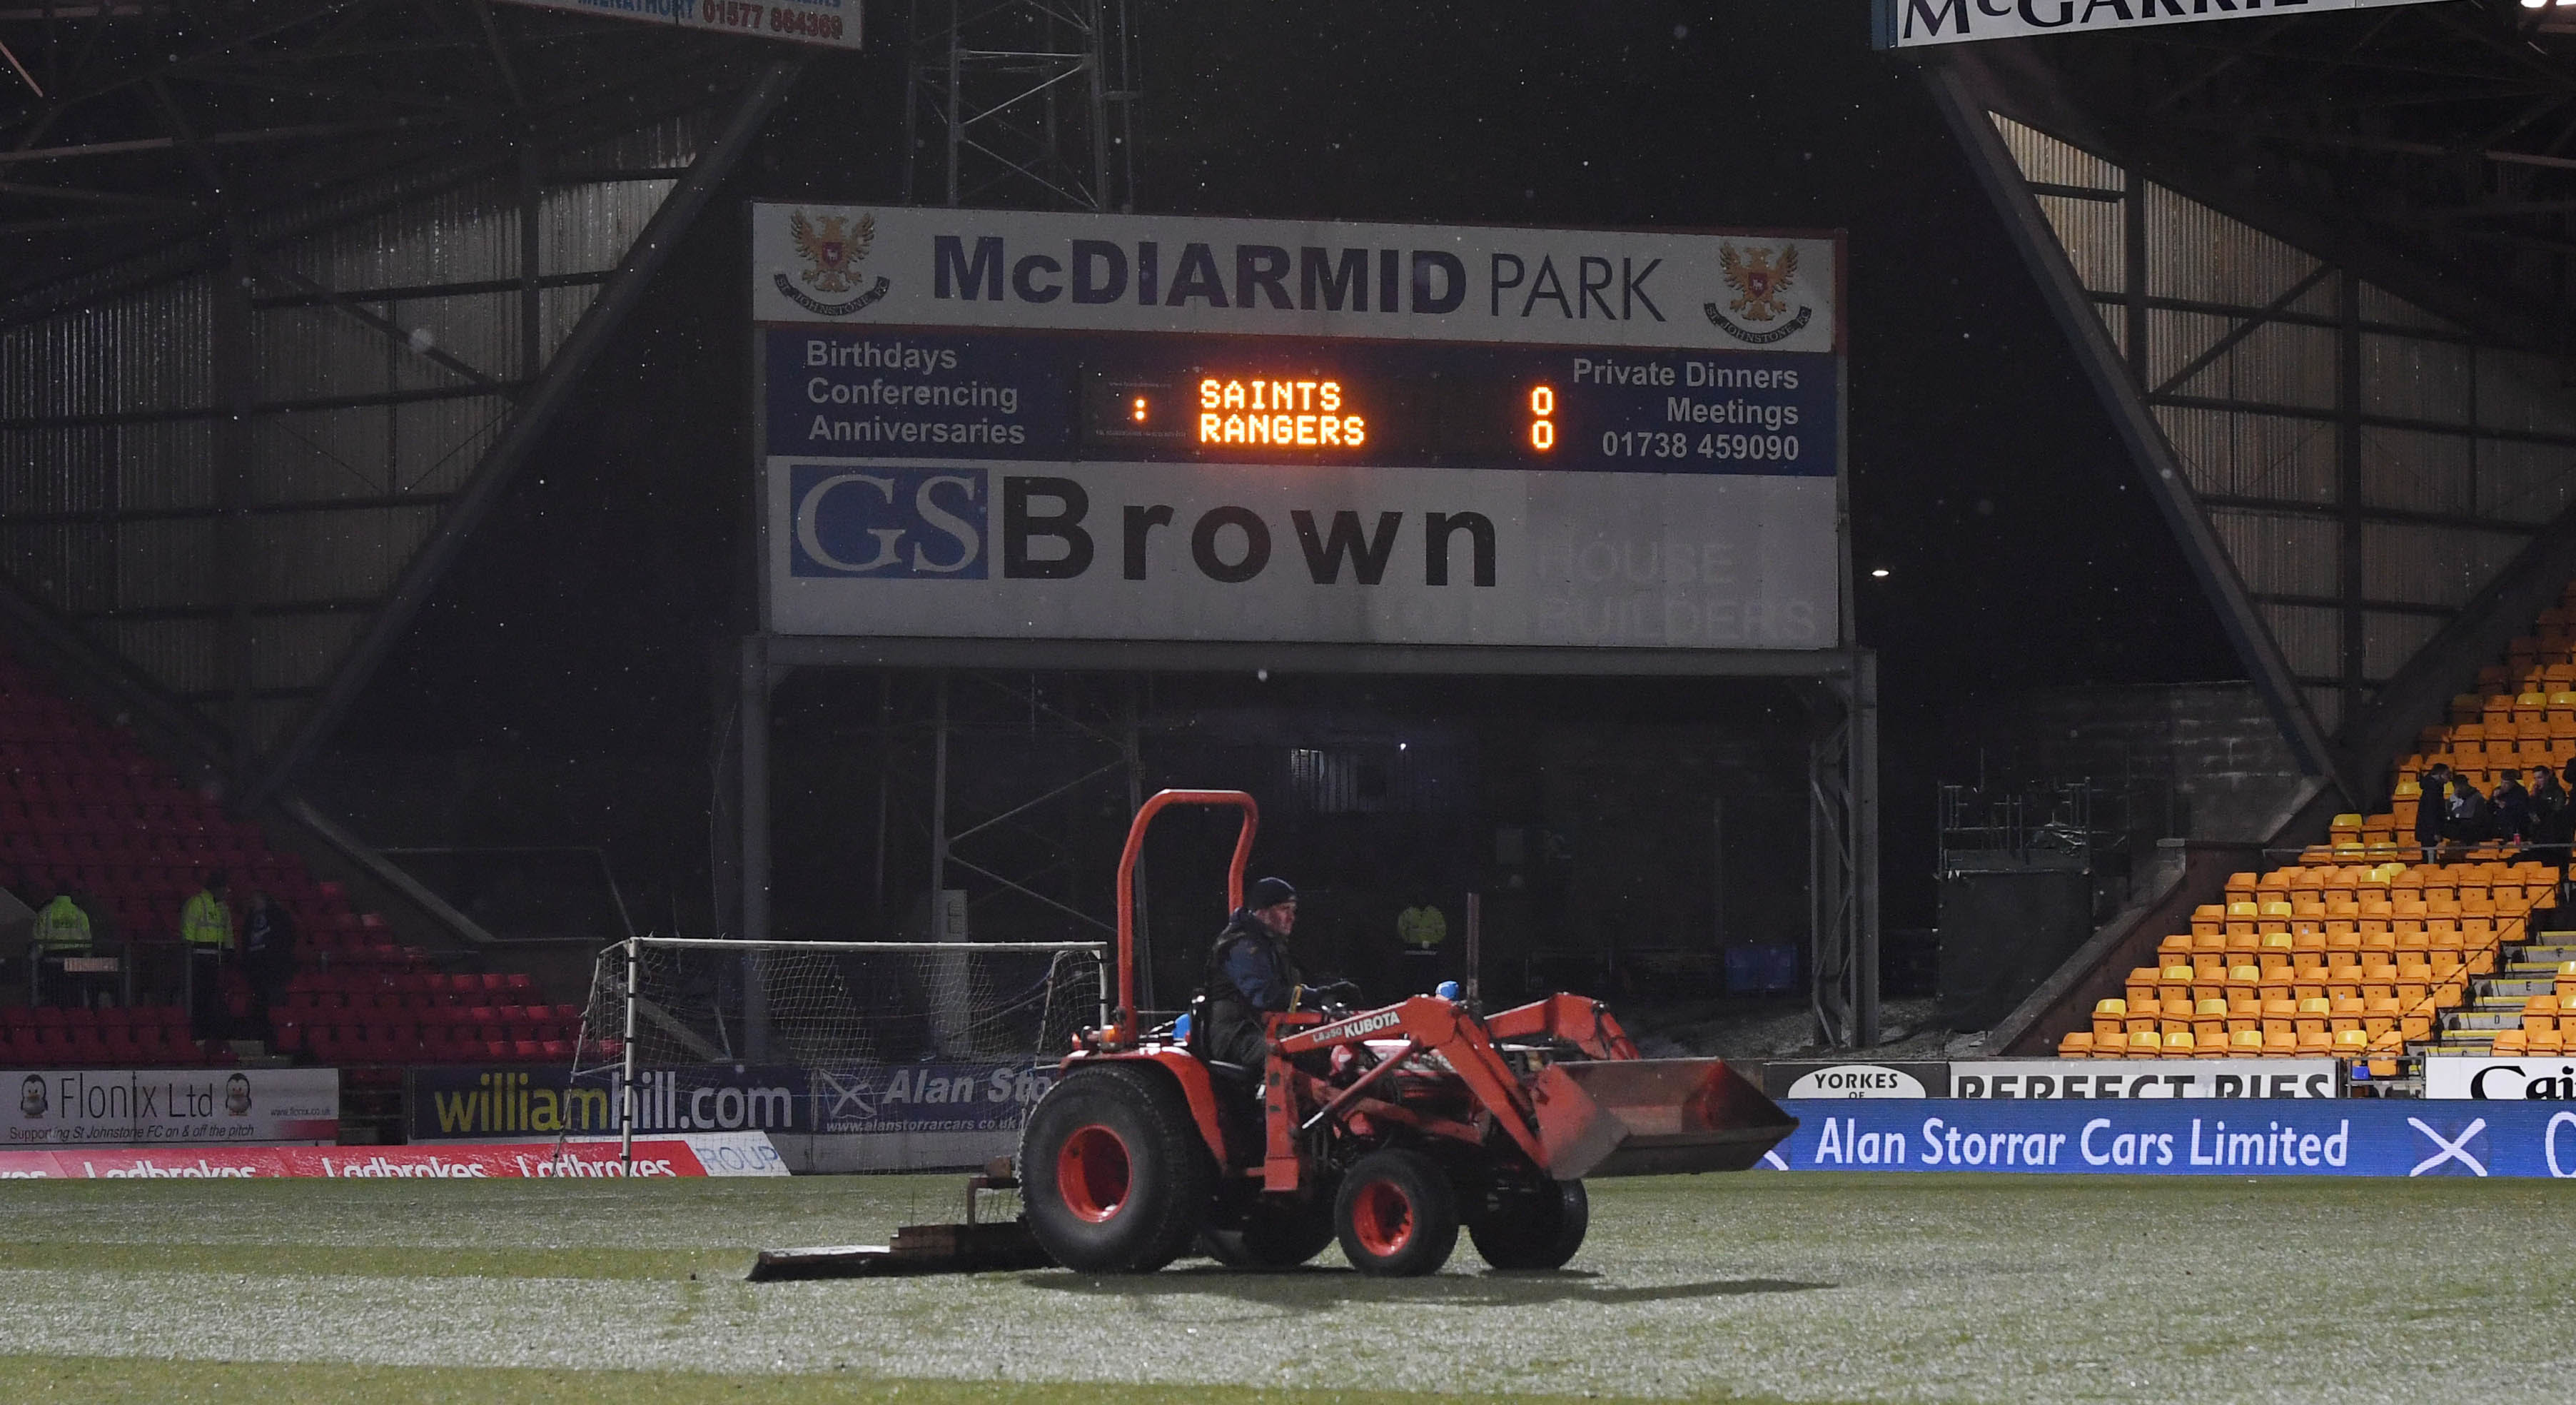 The snow wasn't heavy enough to stop Tuesday night's game being played.